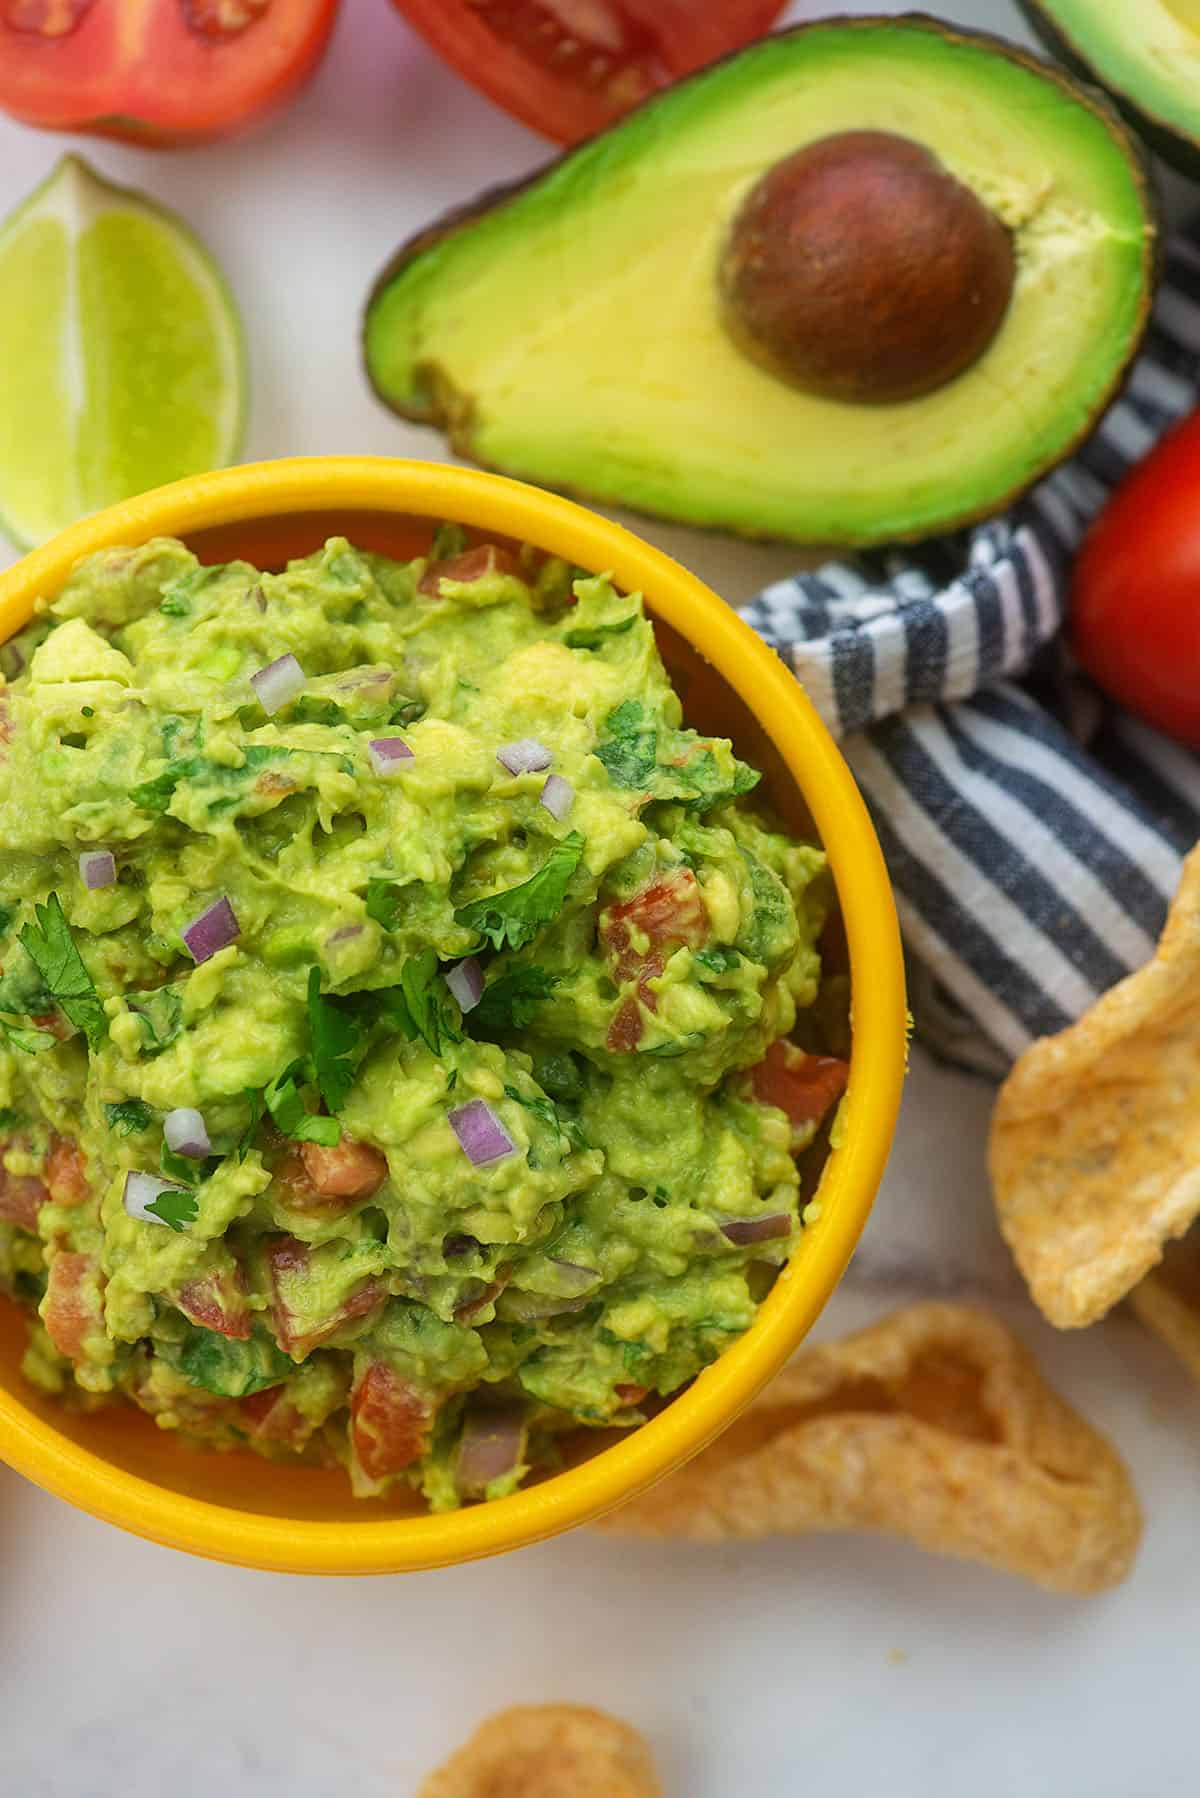 low carb guacamole recipe in yellow bowl